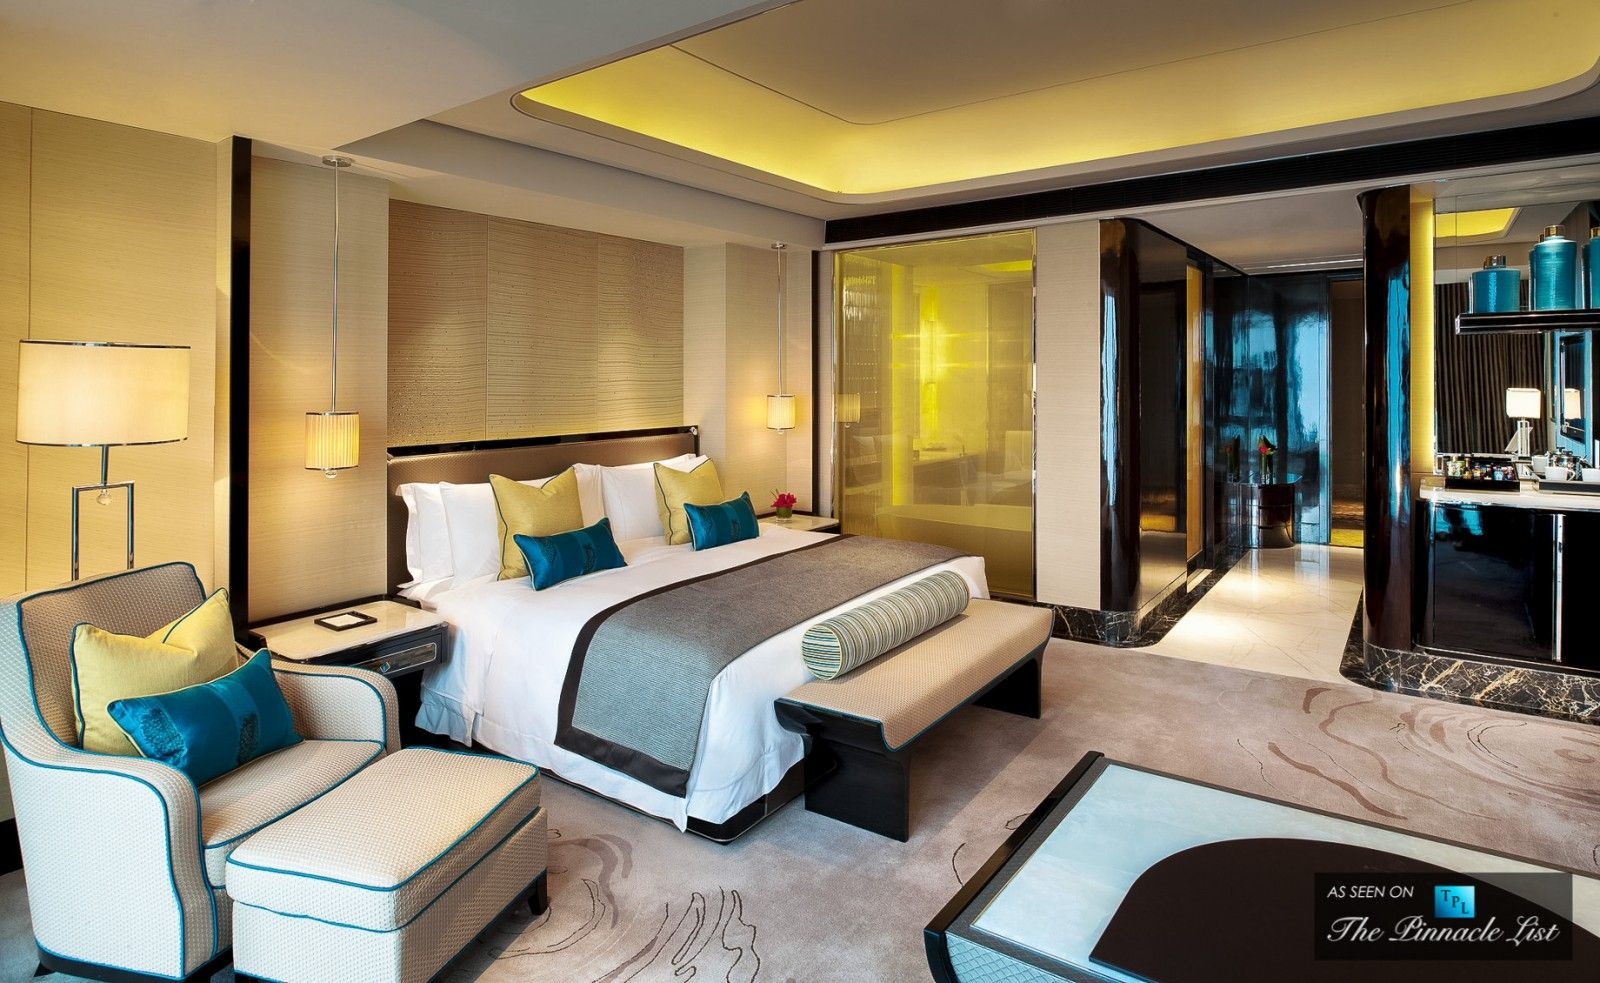 Comfort abounds in this hotel suite st regis luxury for Great small luxury hotels